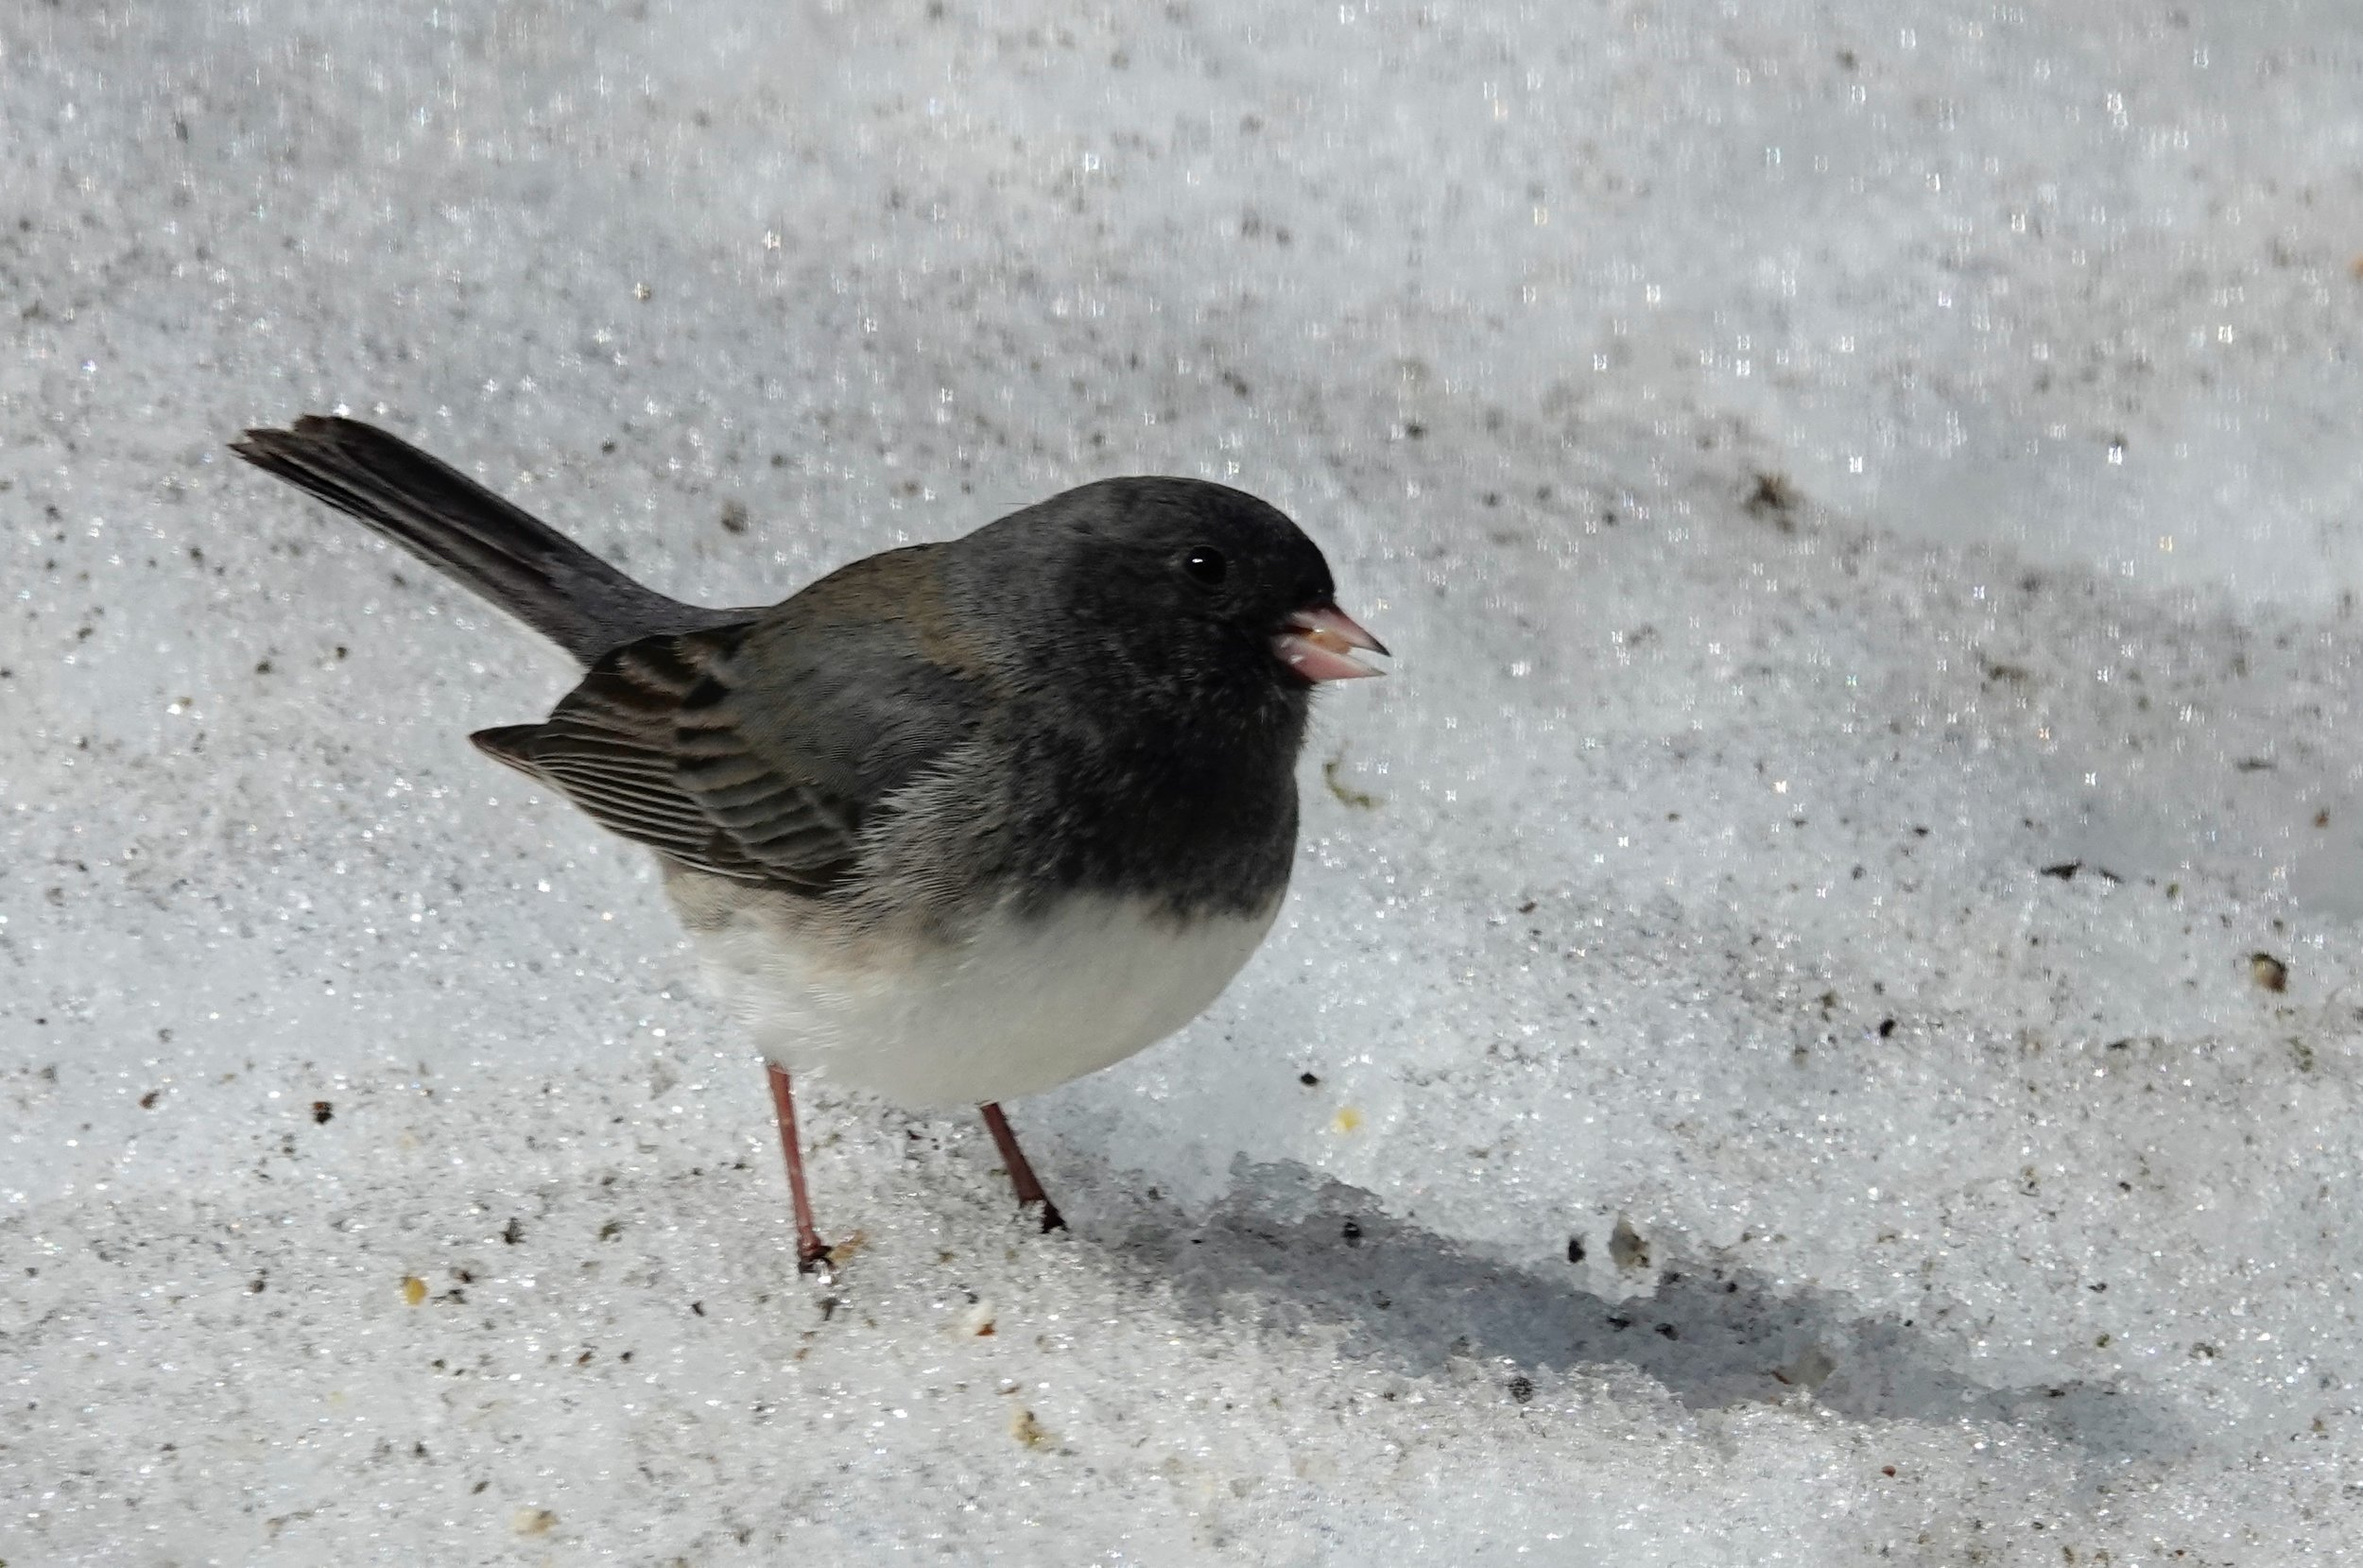 A junco's icy feet might be an encouragement for it to trill about traveling. This bird's trilling is as much of a spring sign as is the smell of skunk in the air.#spring